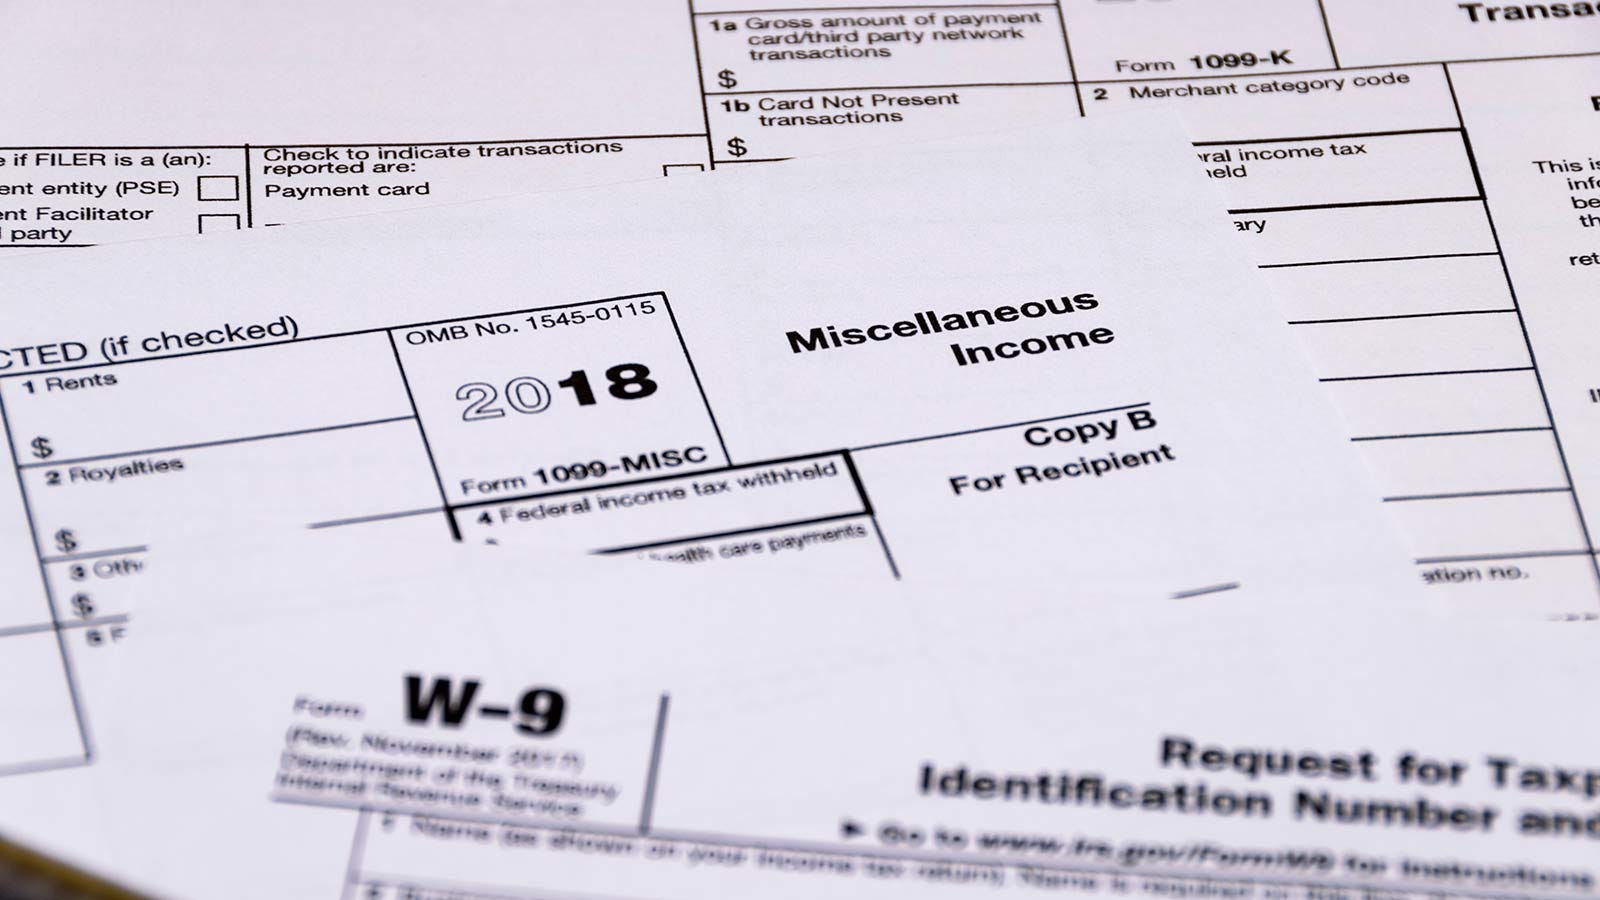 Miscellaneous IRS tax forms spread out on a table.